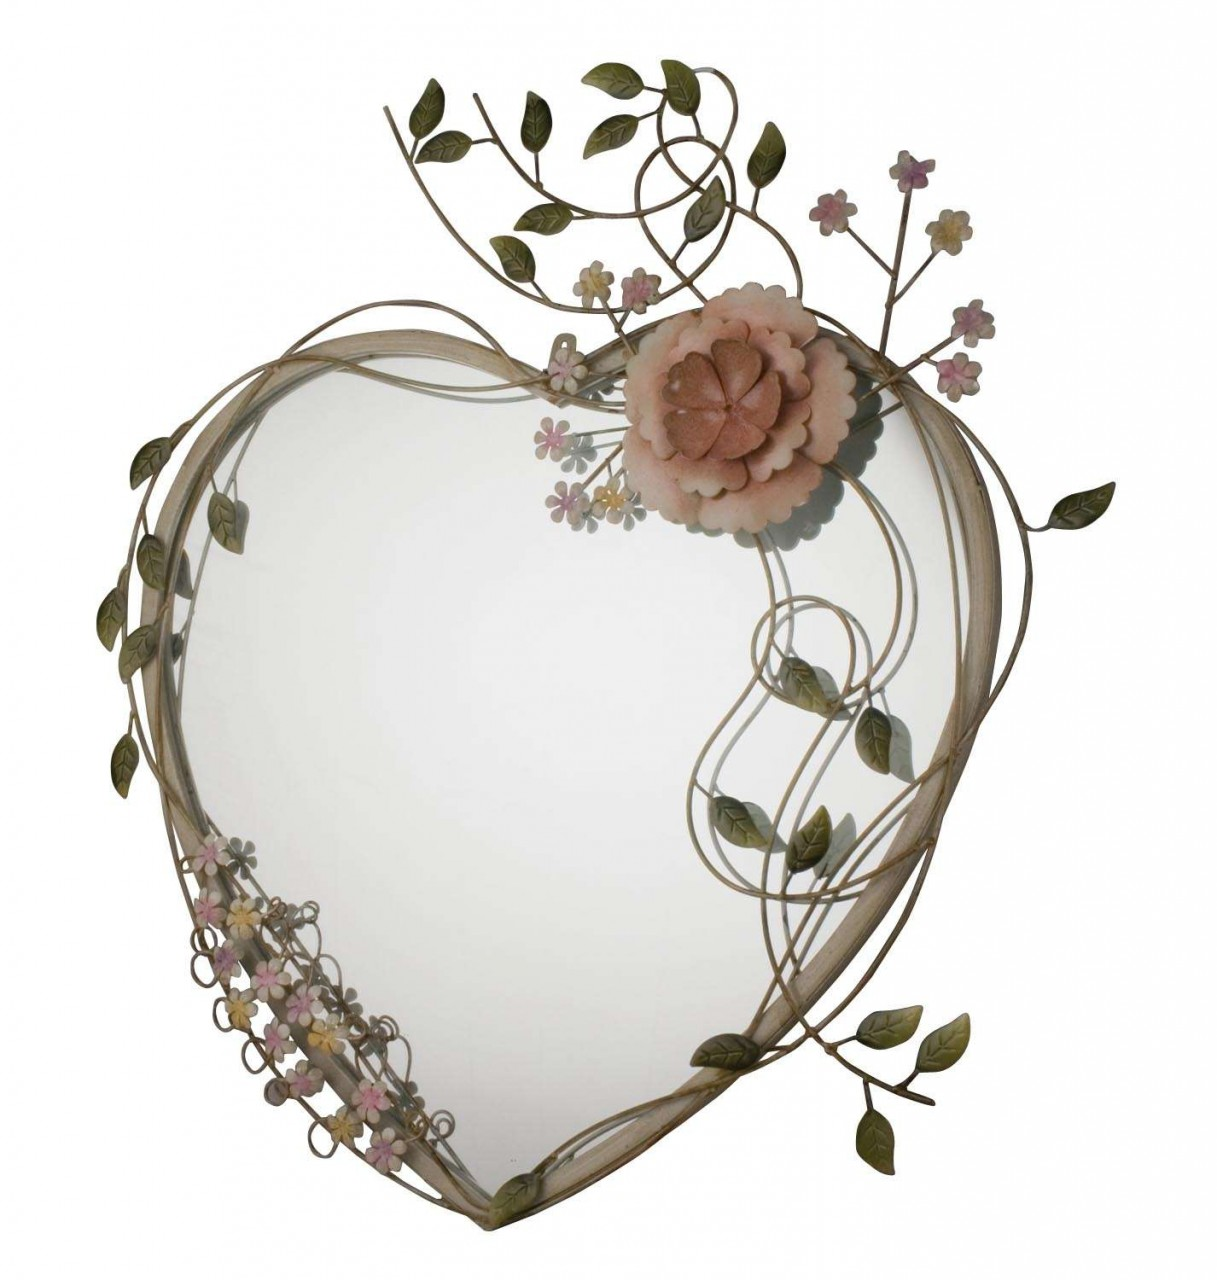 Large heart shaped mirror with metal flower art frame